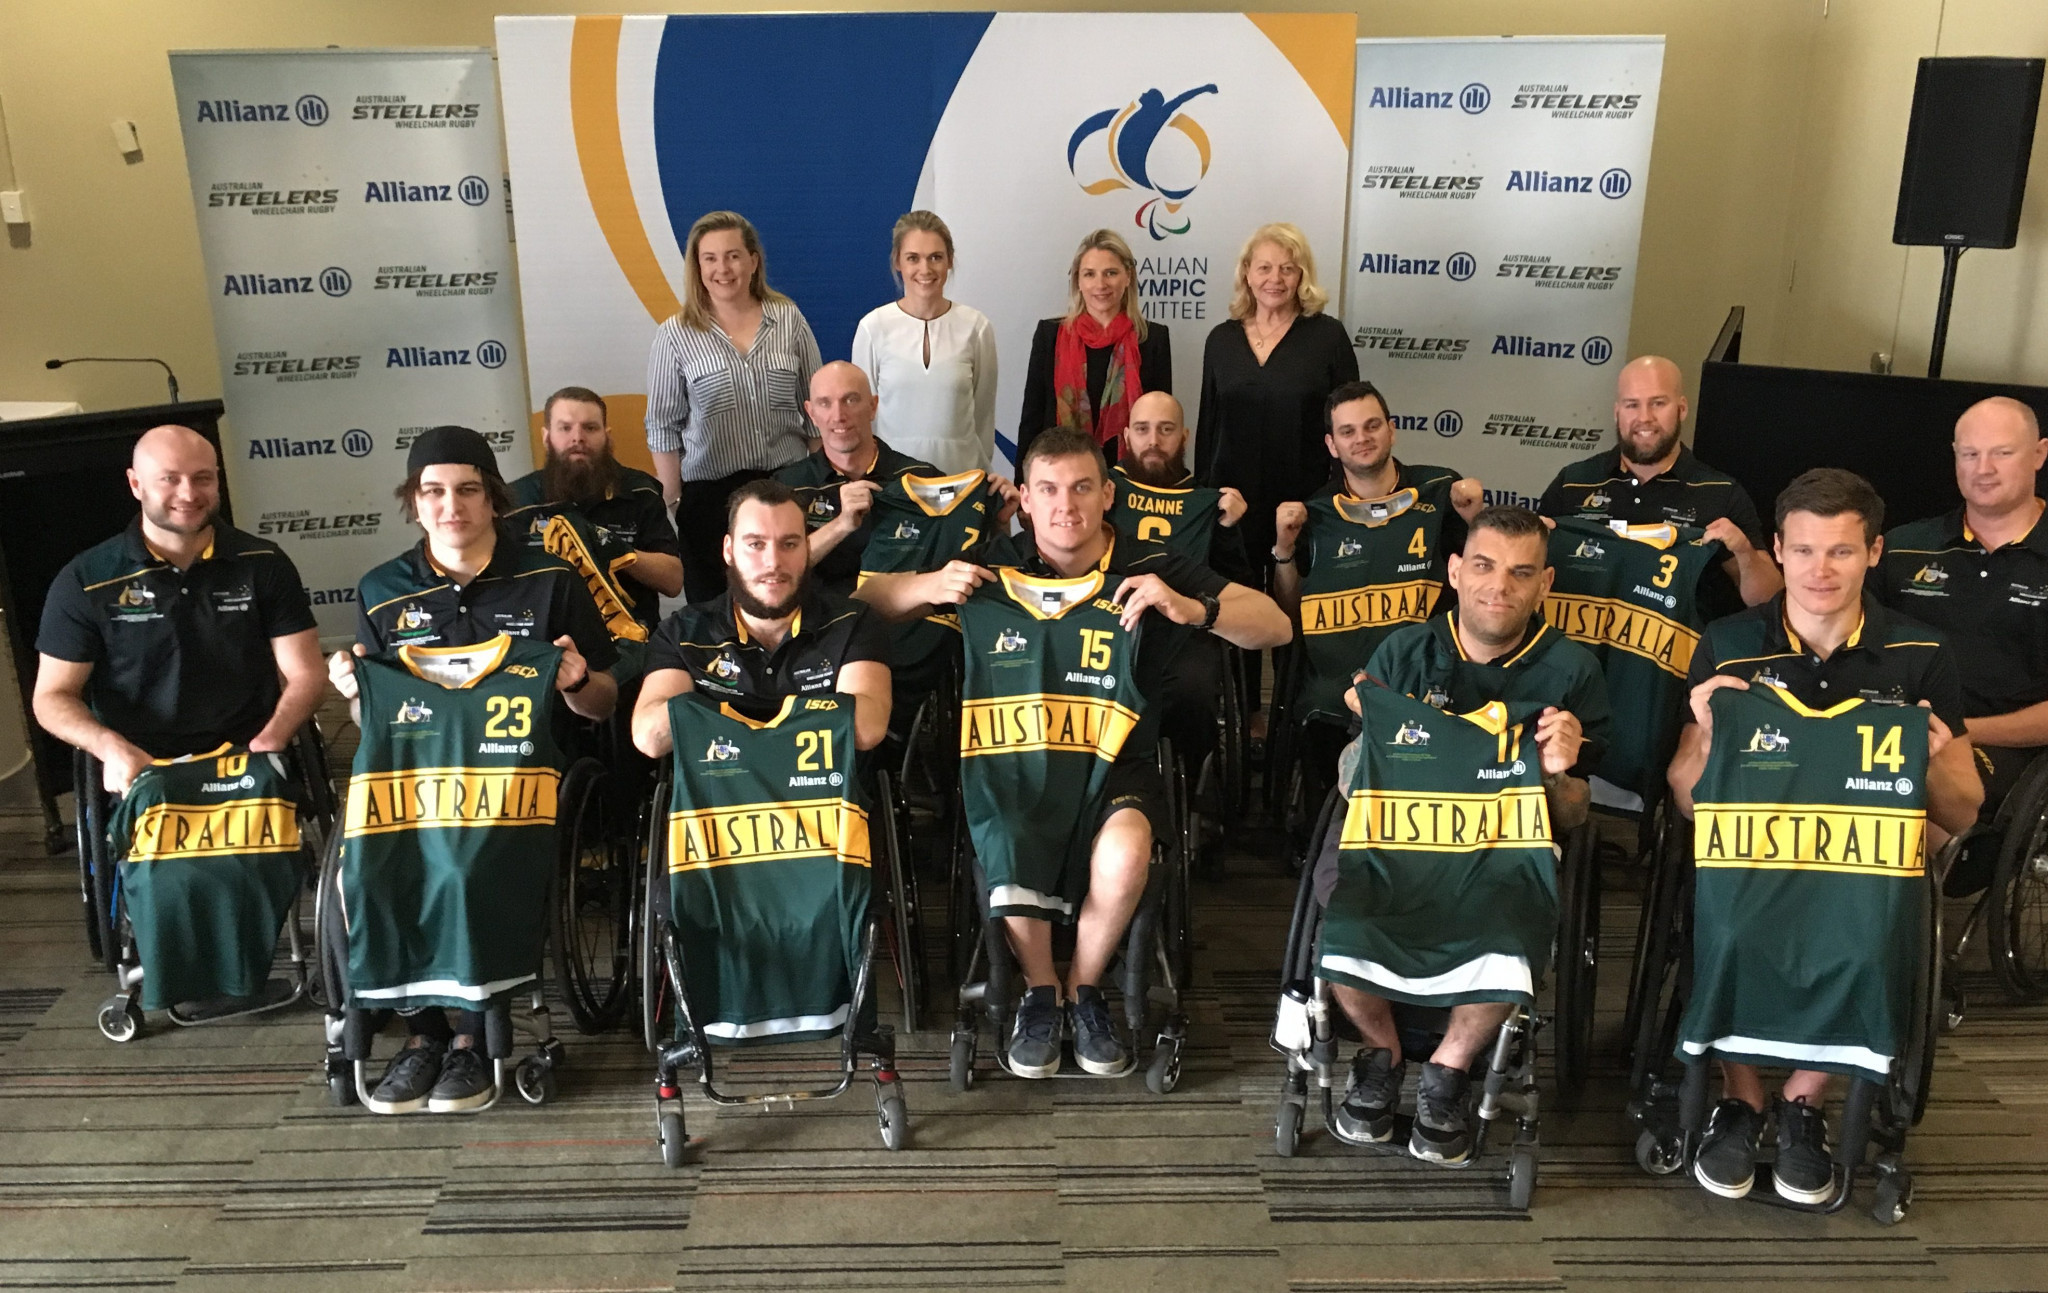 Australia's wheelchair rugby team are ready to defend their world title on the home ground of Sydney ©APC